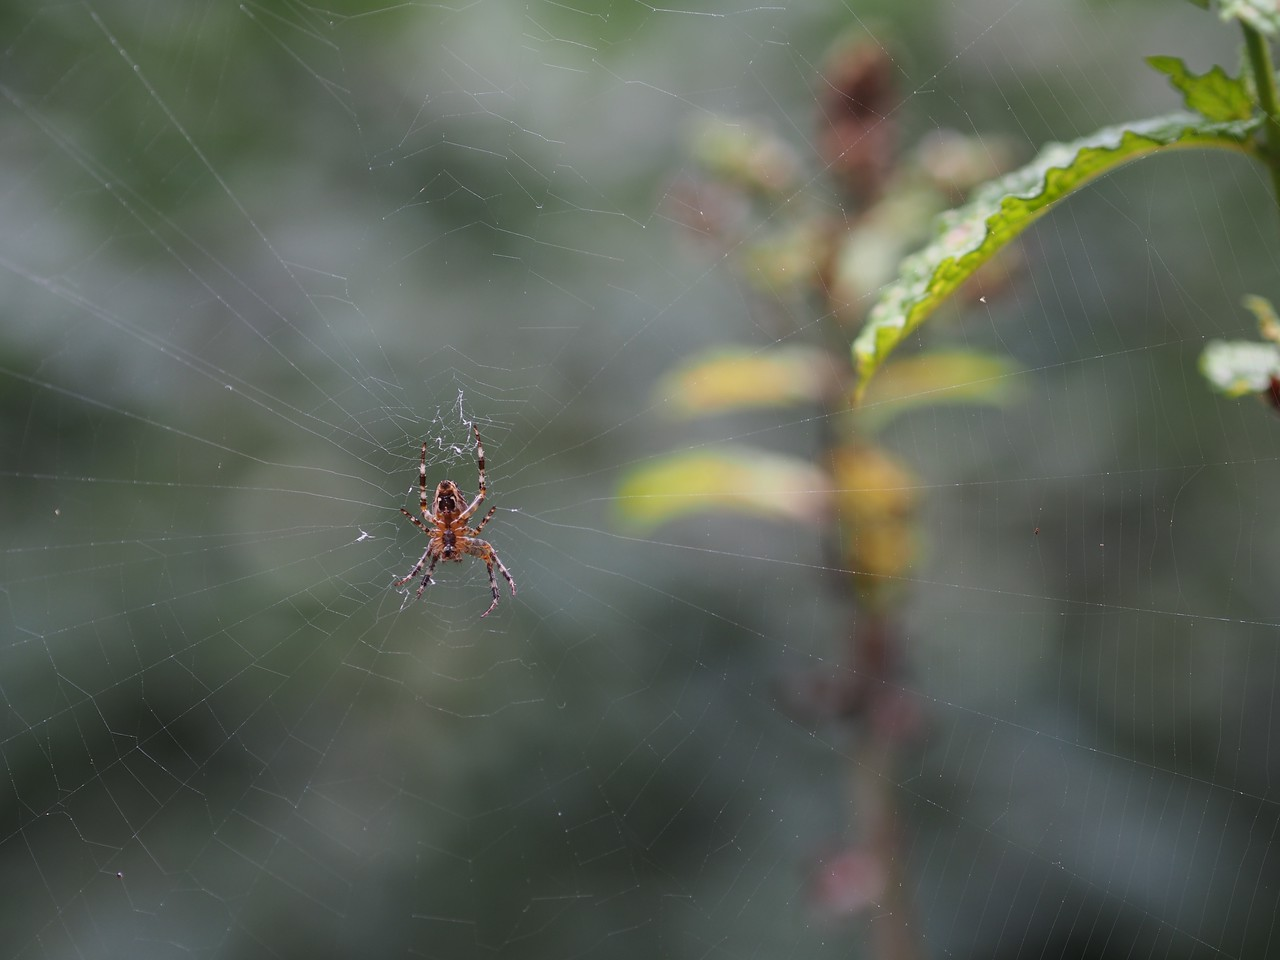 2013 29 Sept Spiders 4